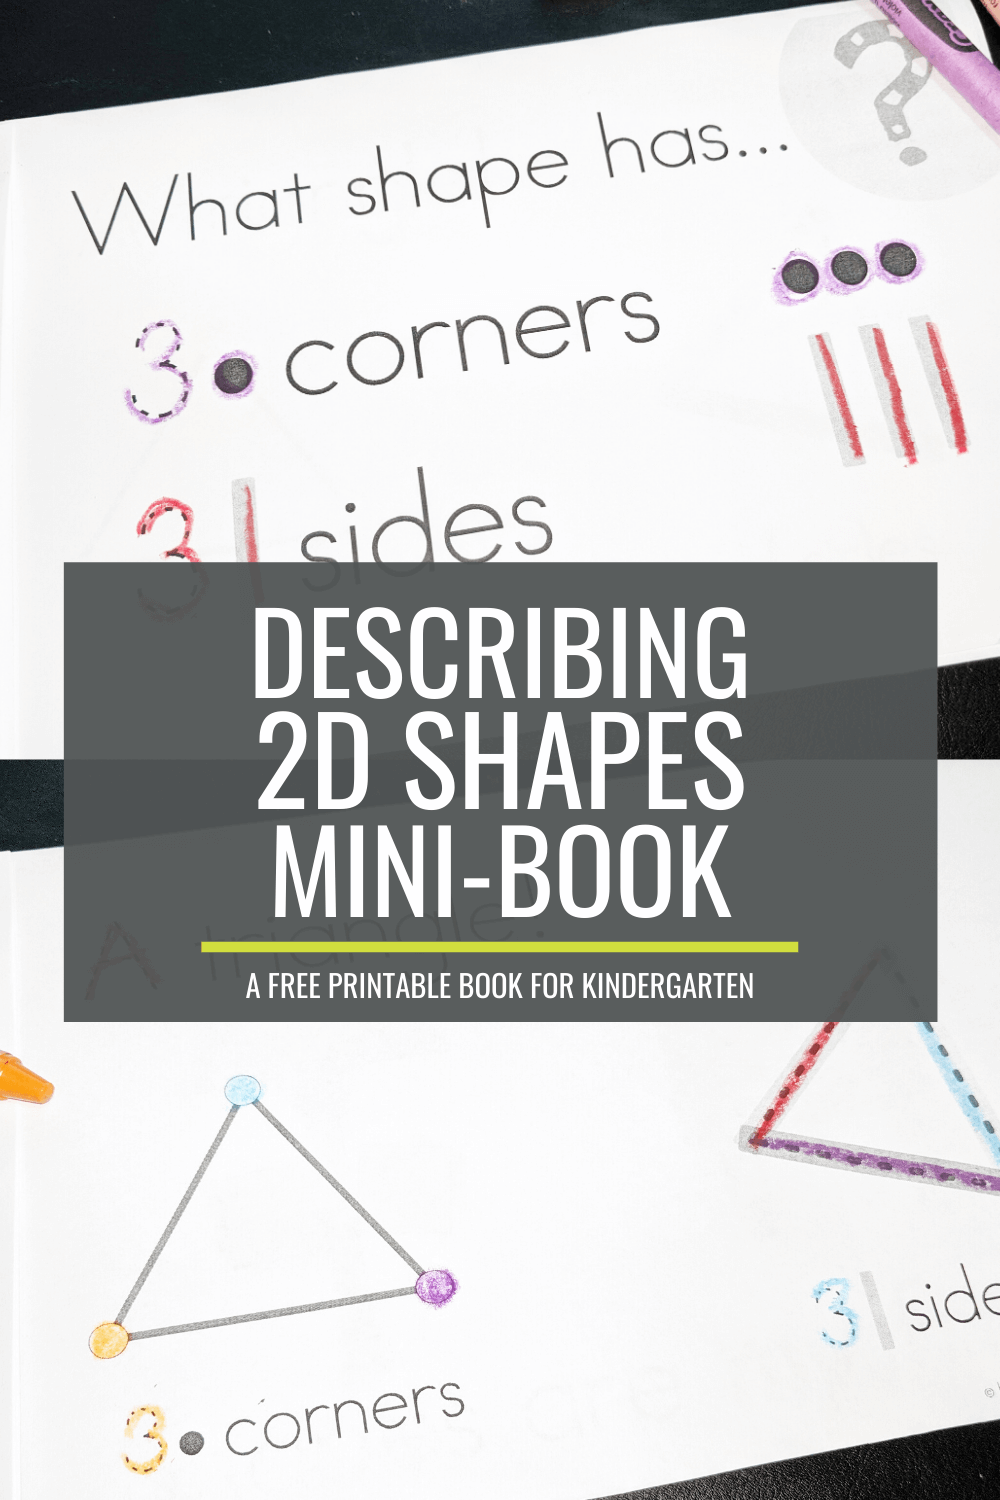 Free Describing 2D Shapes Mini-Booklet for Kindergarten